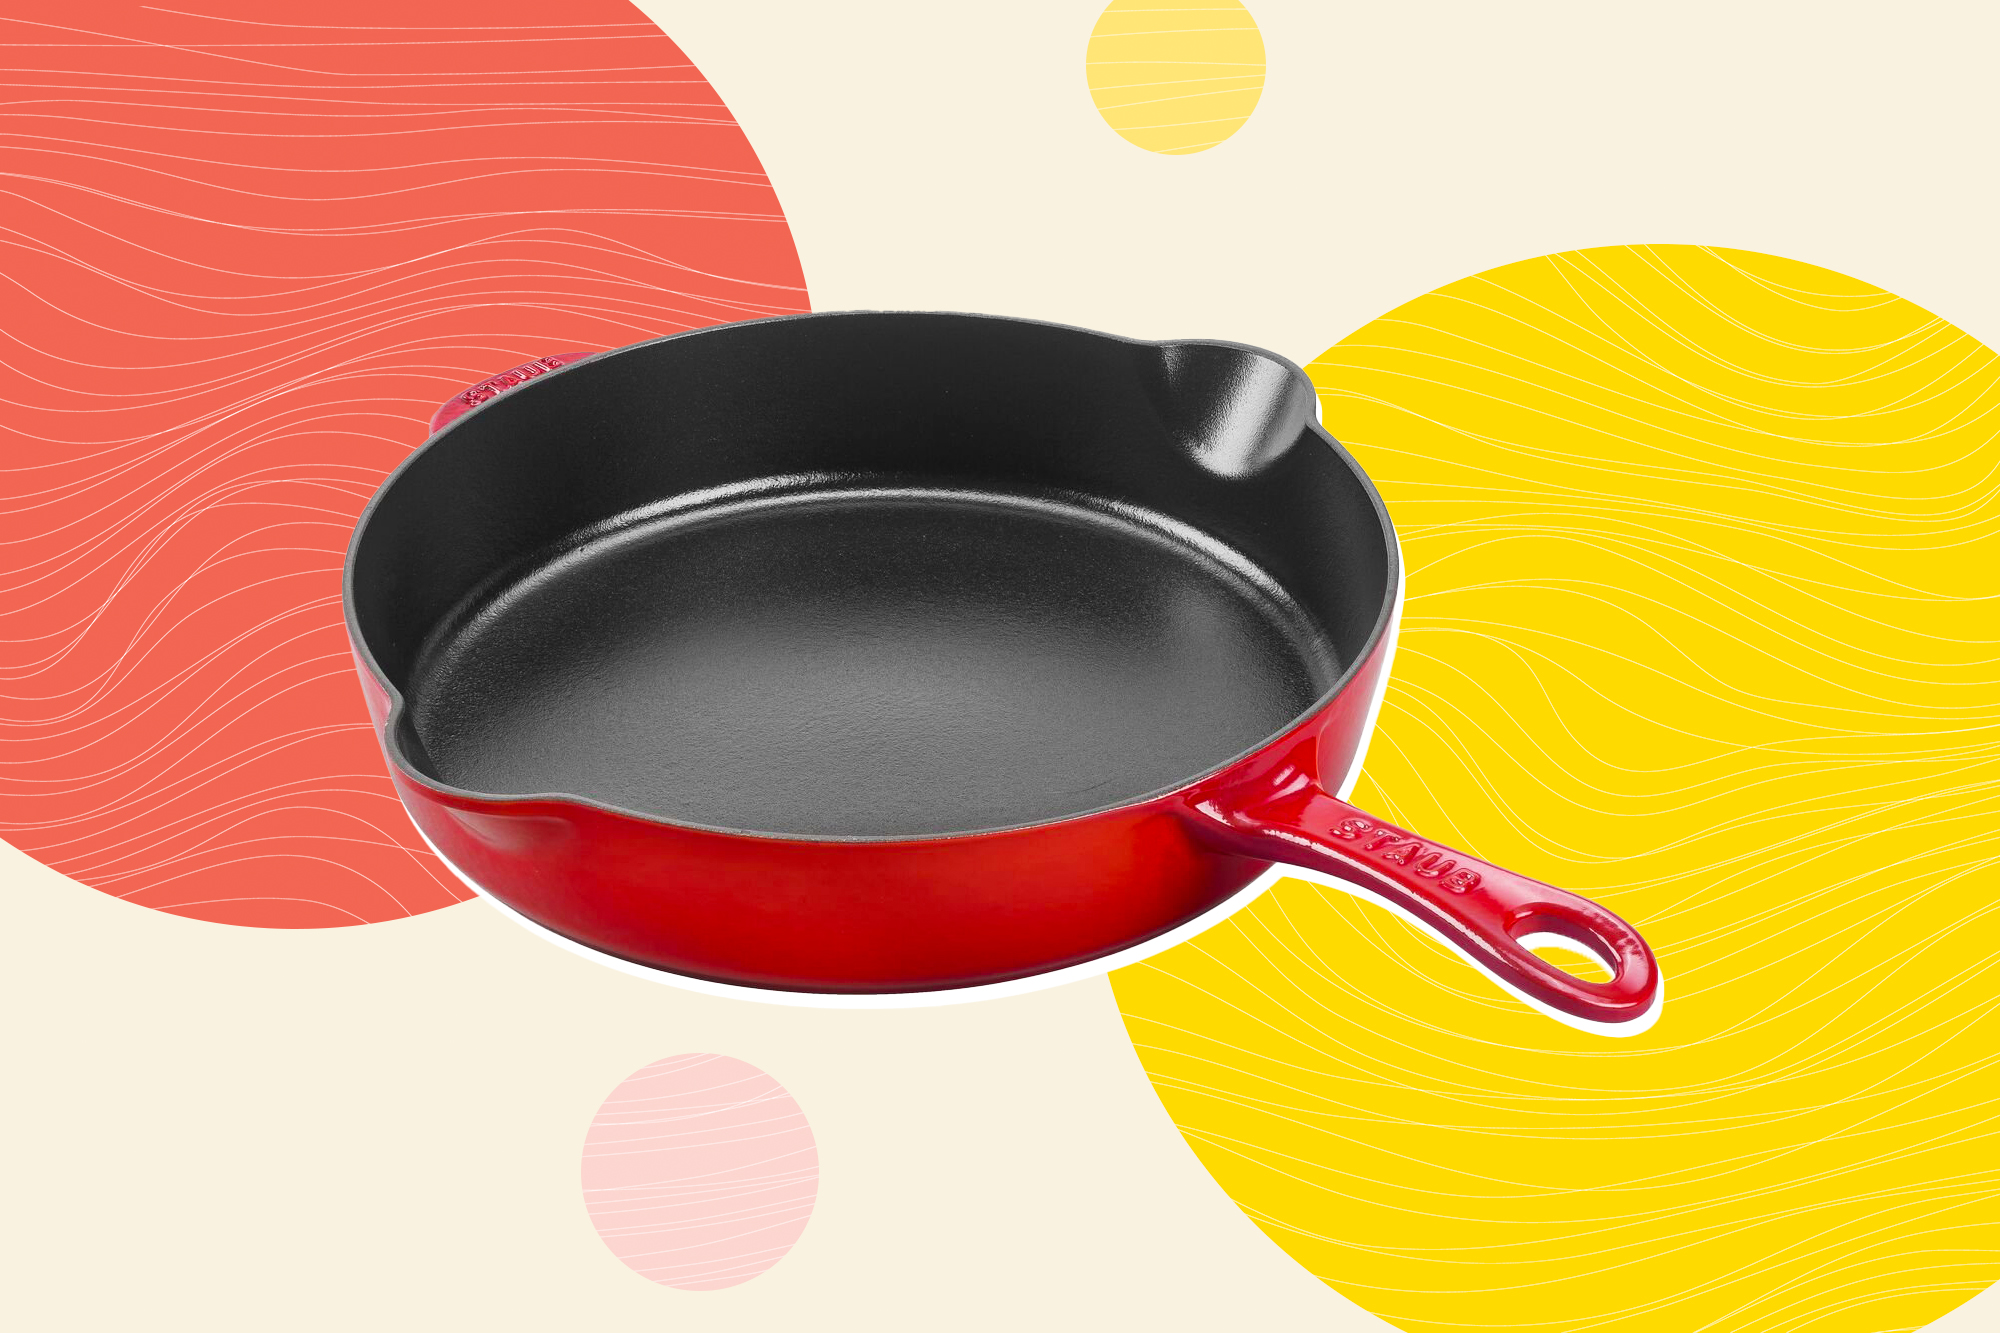 STAUB CAST IRON - FRY PANS/ SKILLETS 11-INCH, TRADITIONAL DEEP SKILLET, CHERRY